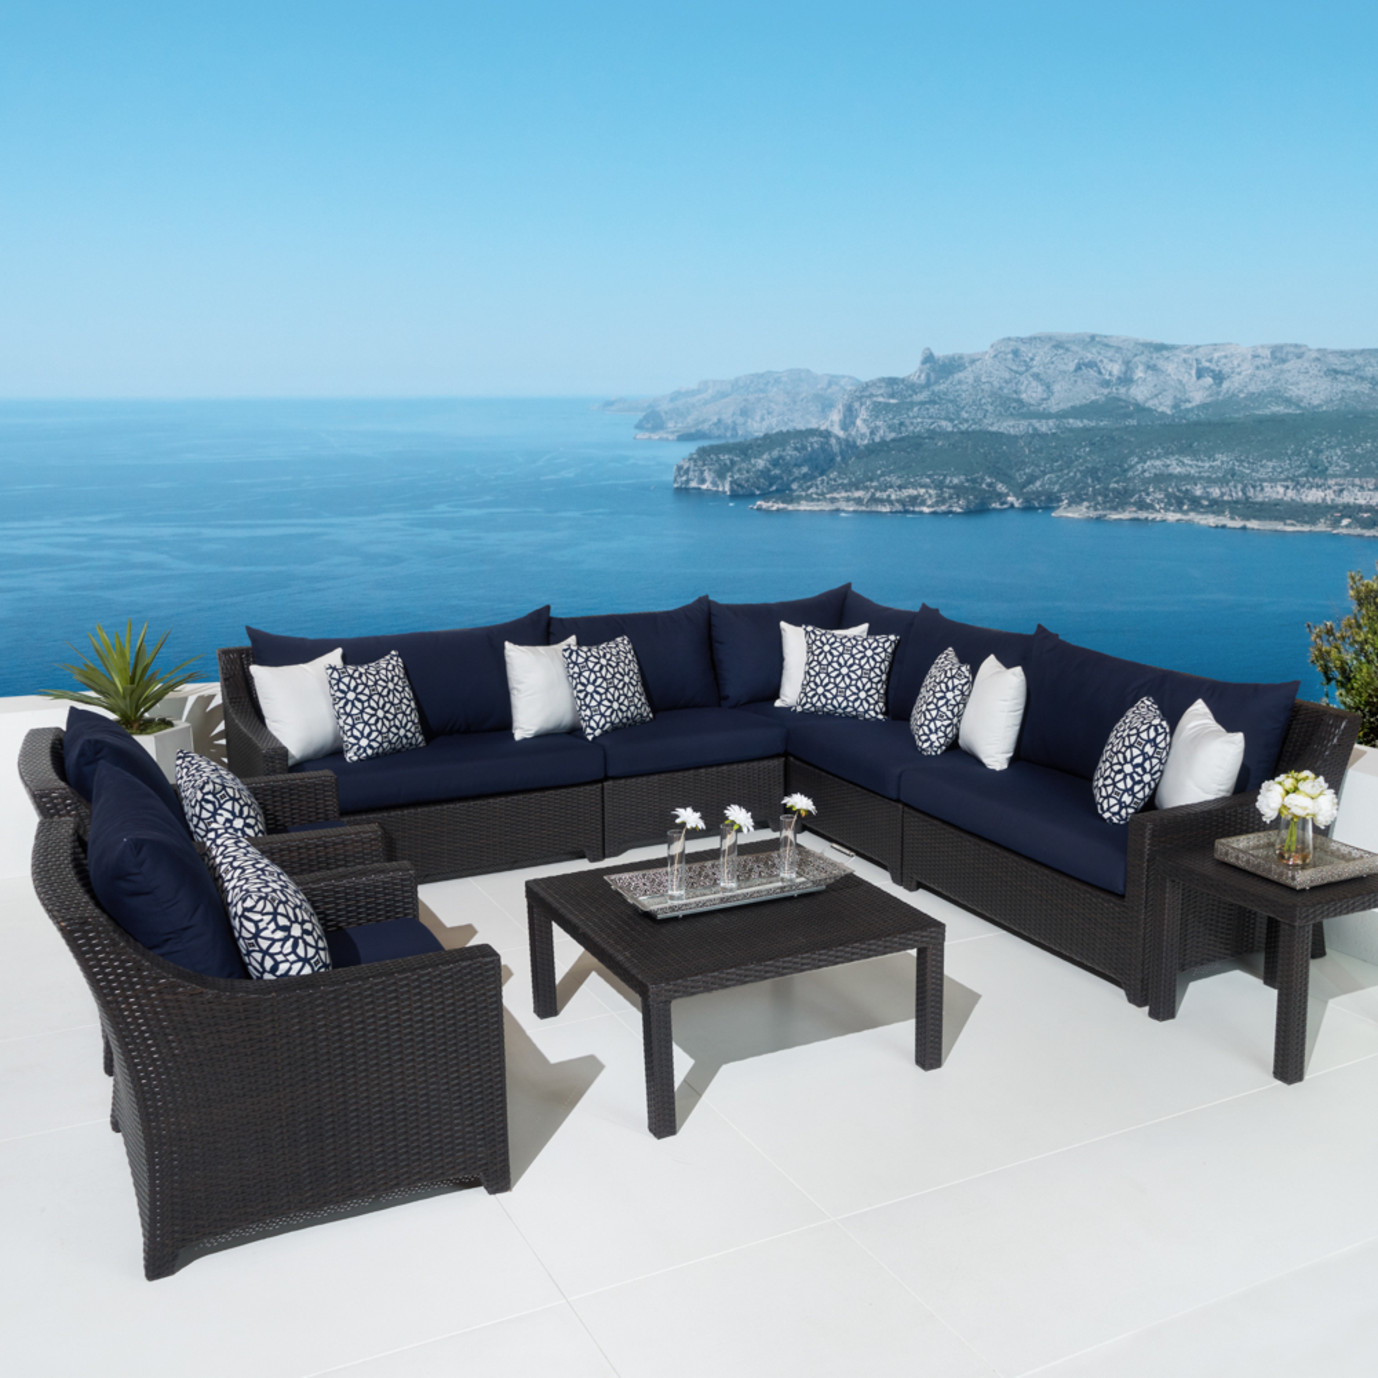 Deco™ 9pc Sectional and Club Set - Navy Blue